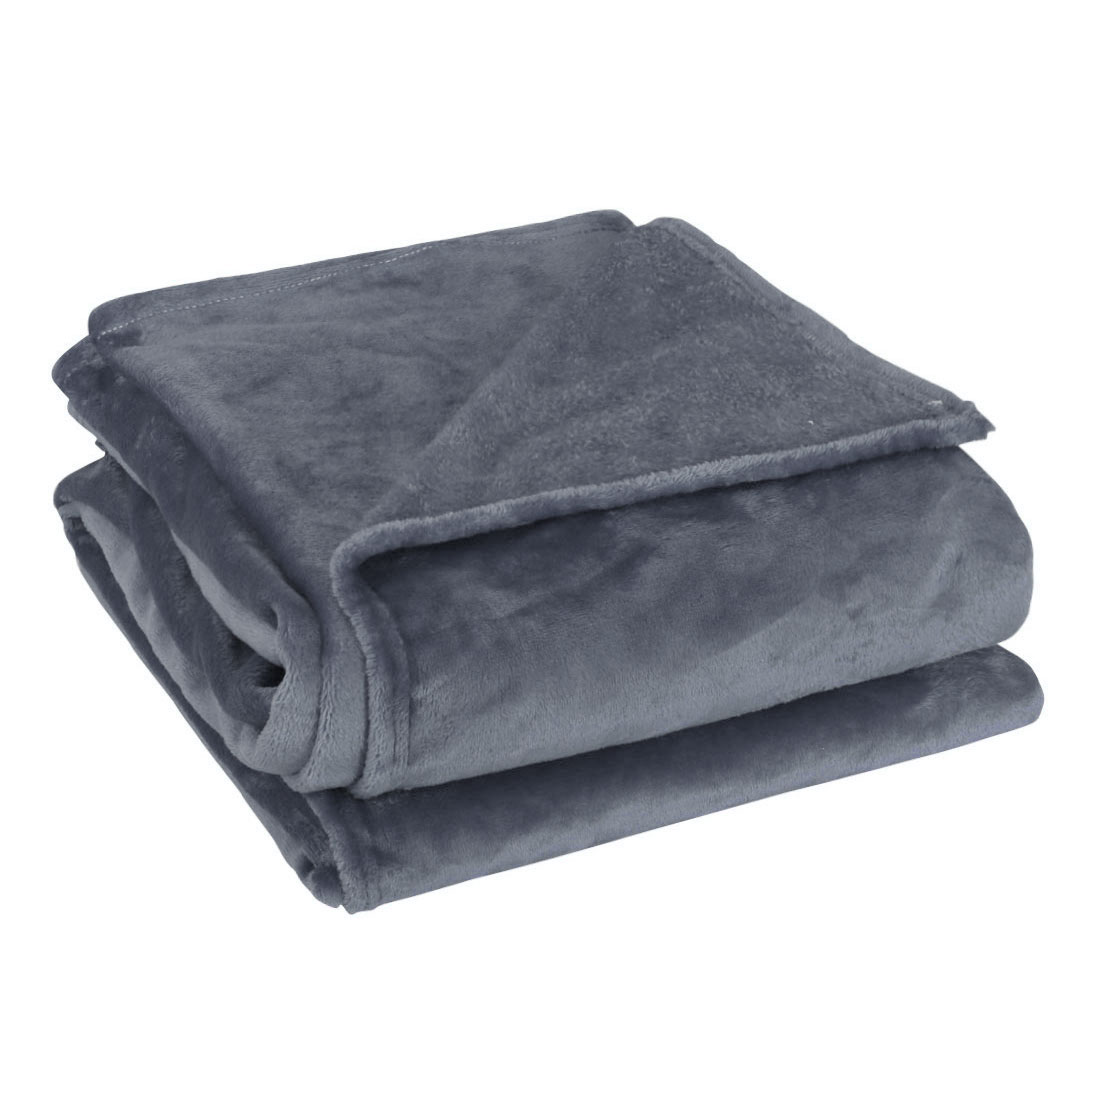 Home Bedroom Soft Microplush Fleece Throw Blanket for Twin/Full/Queen Bed